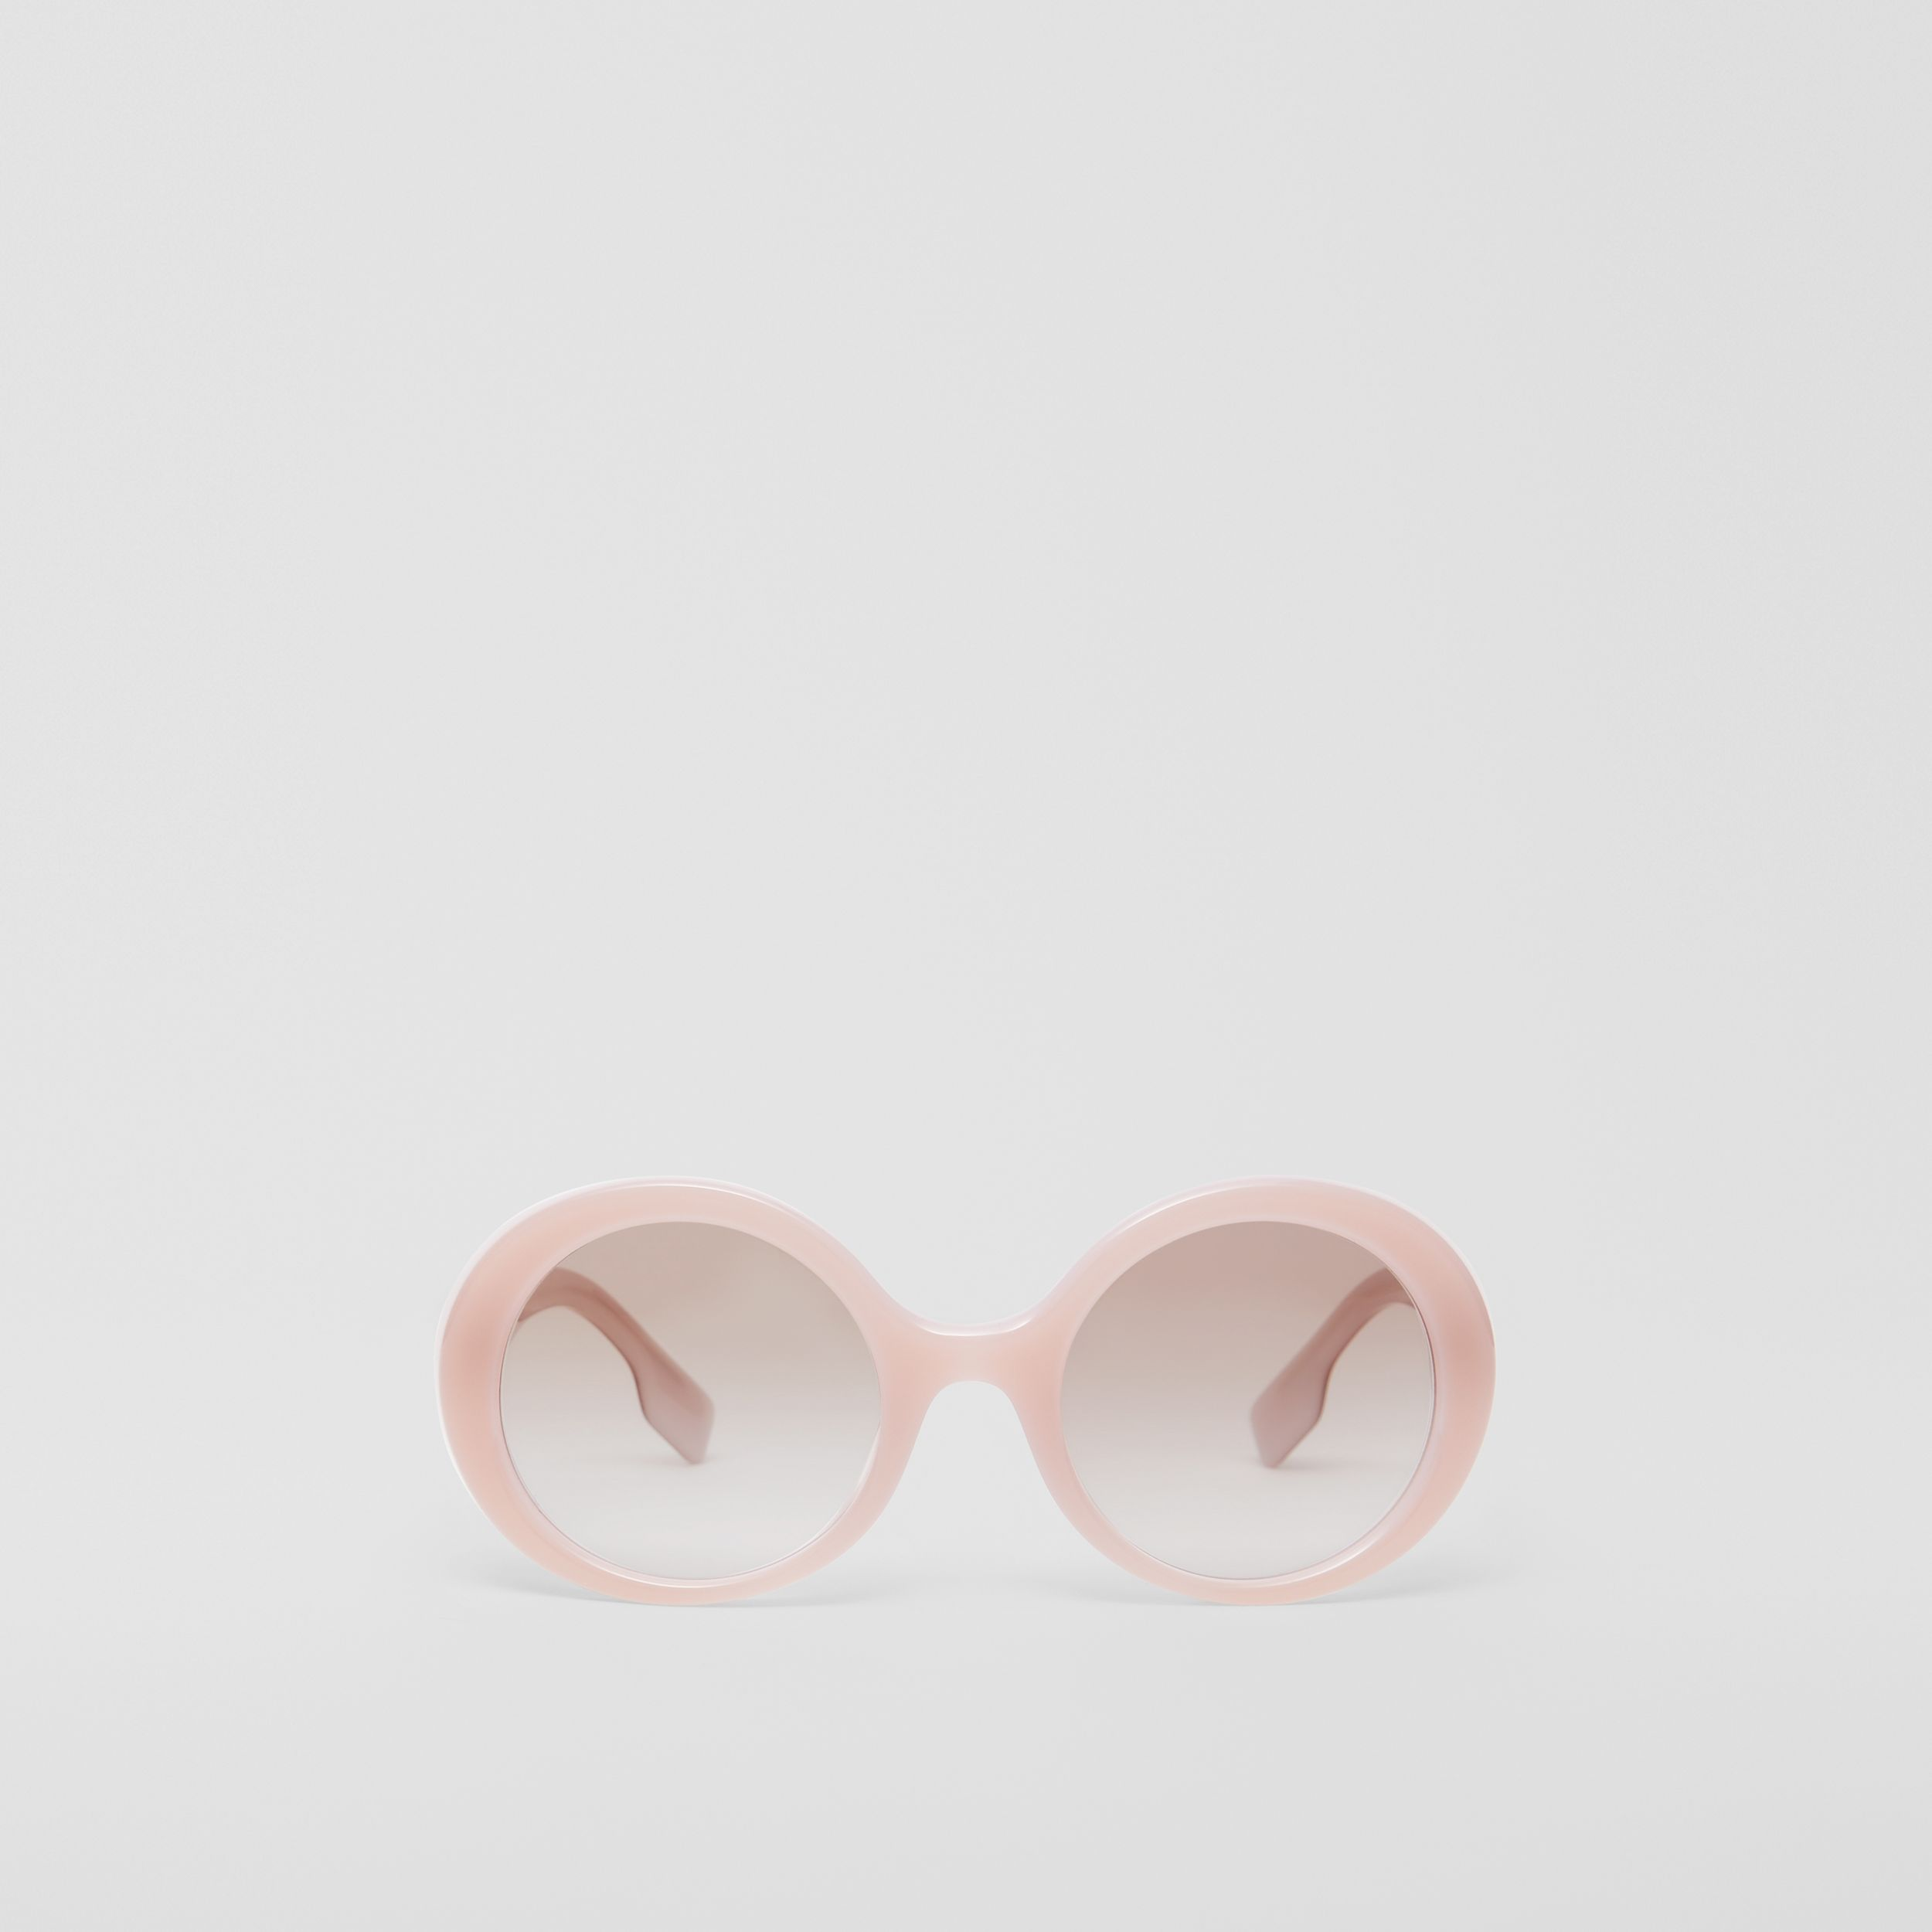 Oversized Round Frame Sunglasses in Opal Pink - Women | Burberry Canada - 1